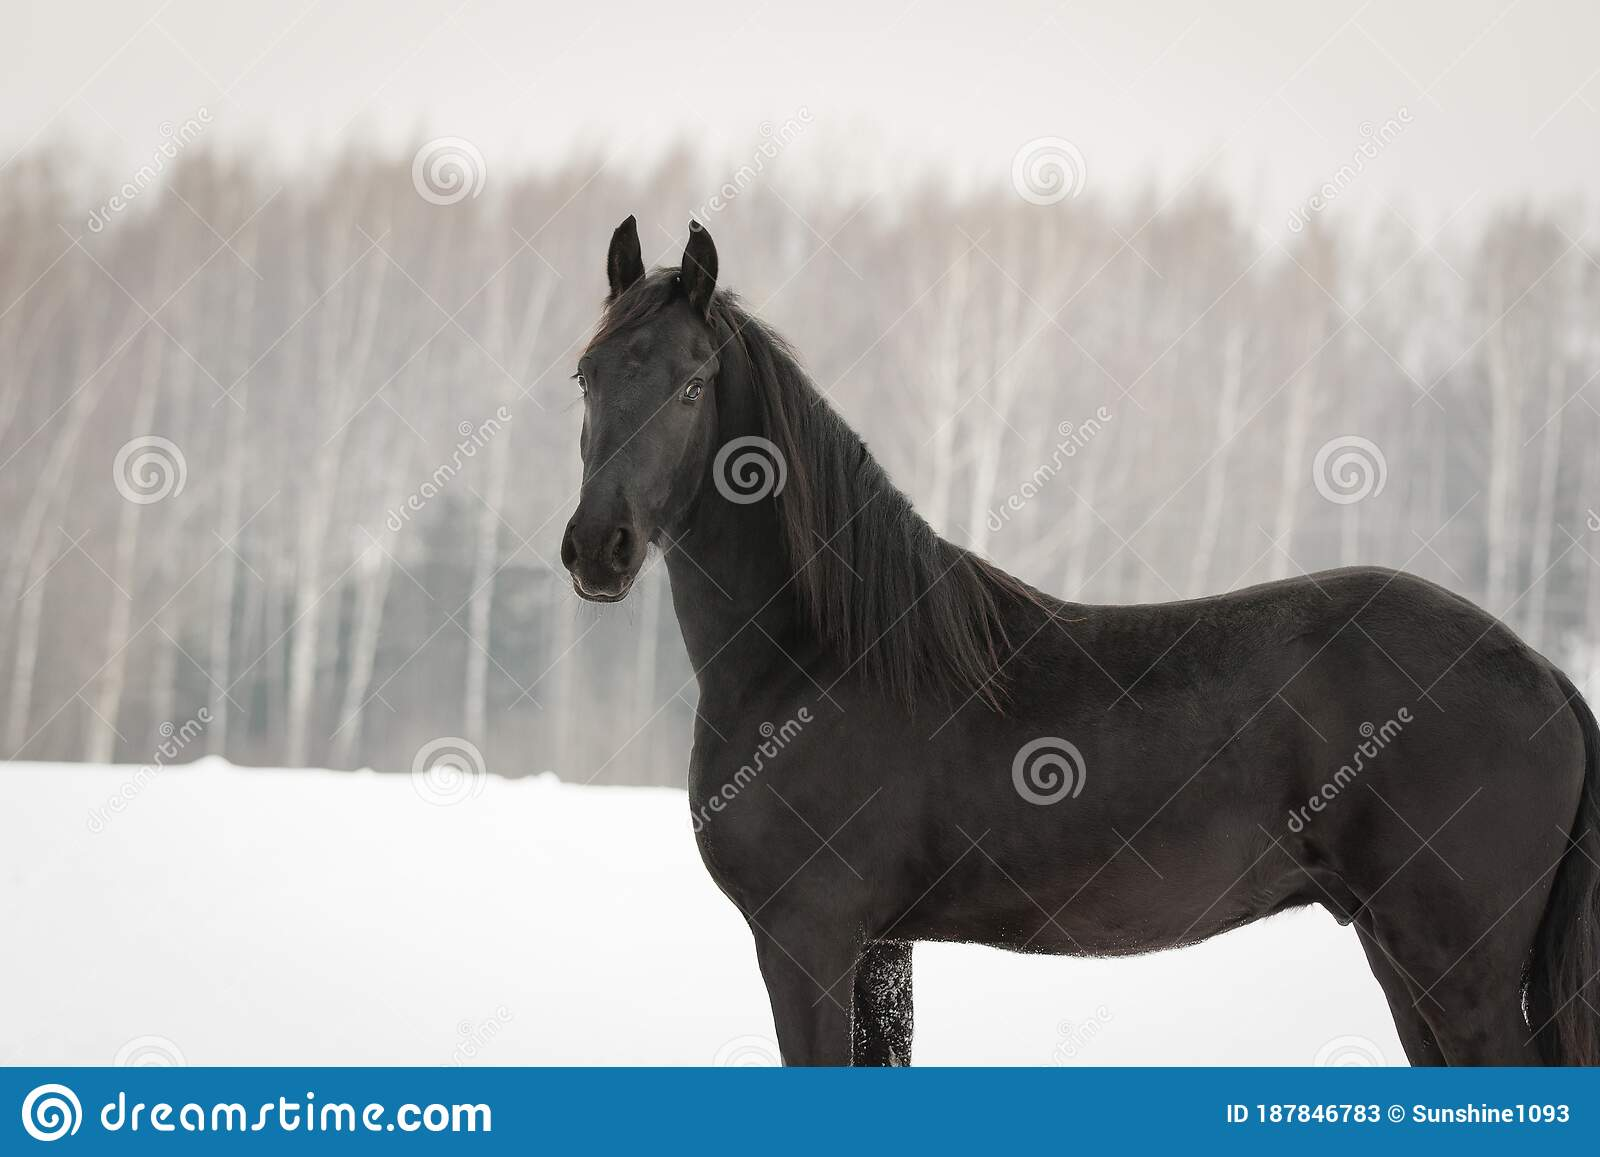 Portrait Of A Black Friesian Horse On White Snow Stock Image Image Of Equestrian Stable 187846783